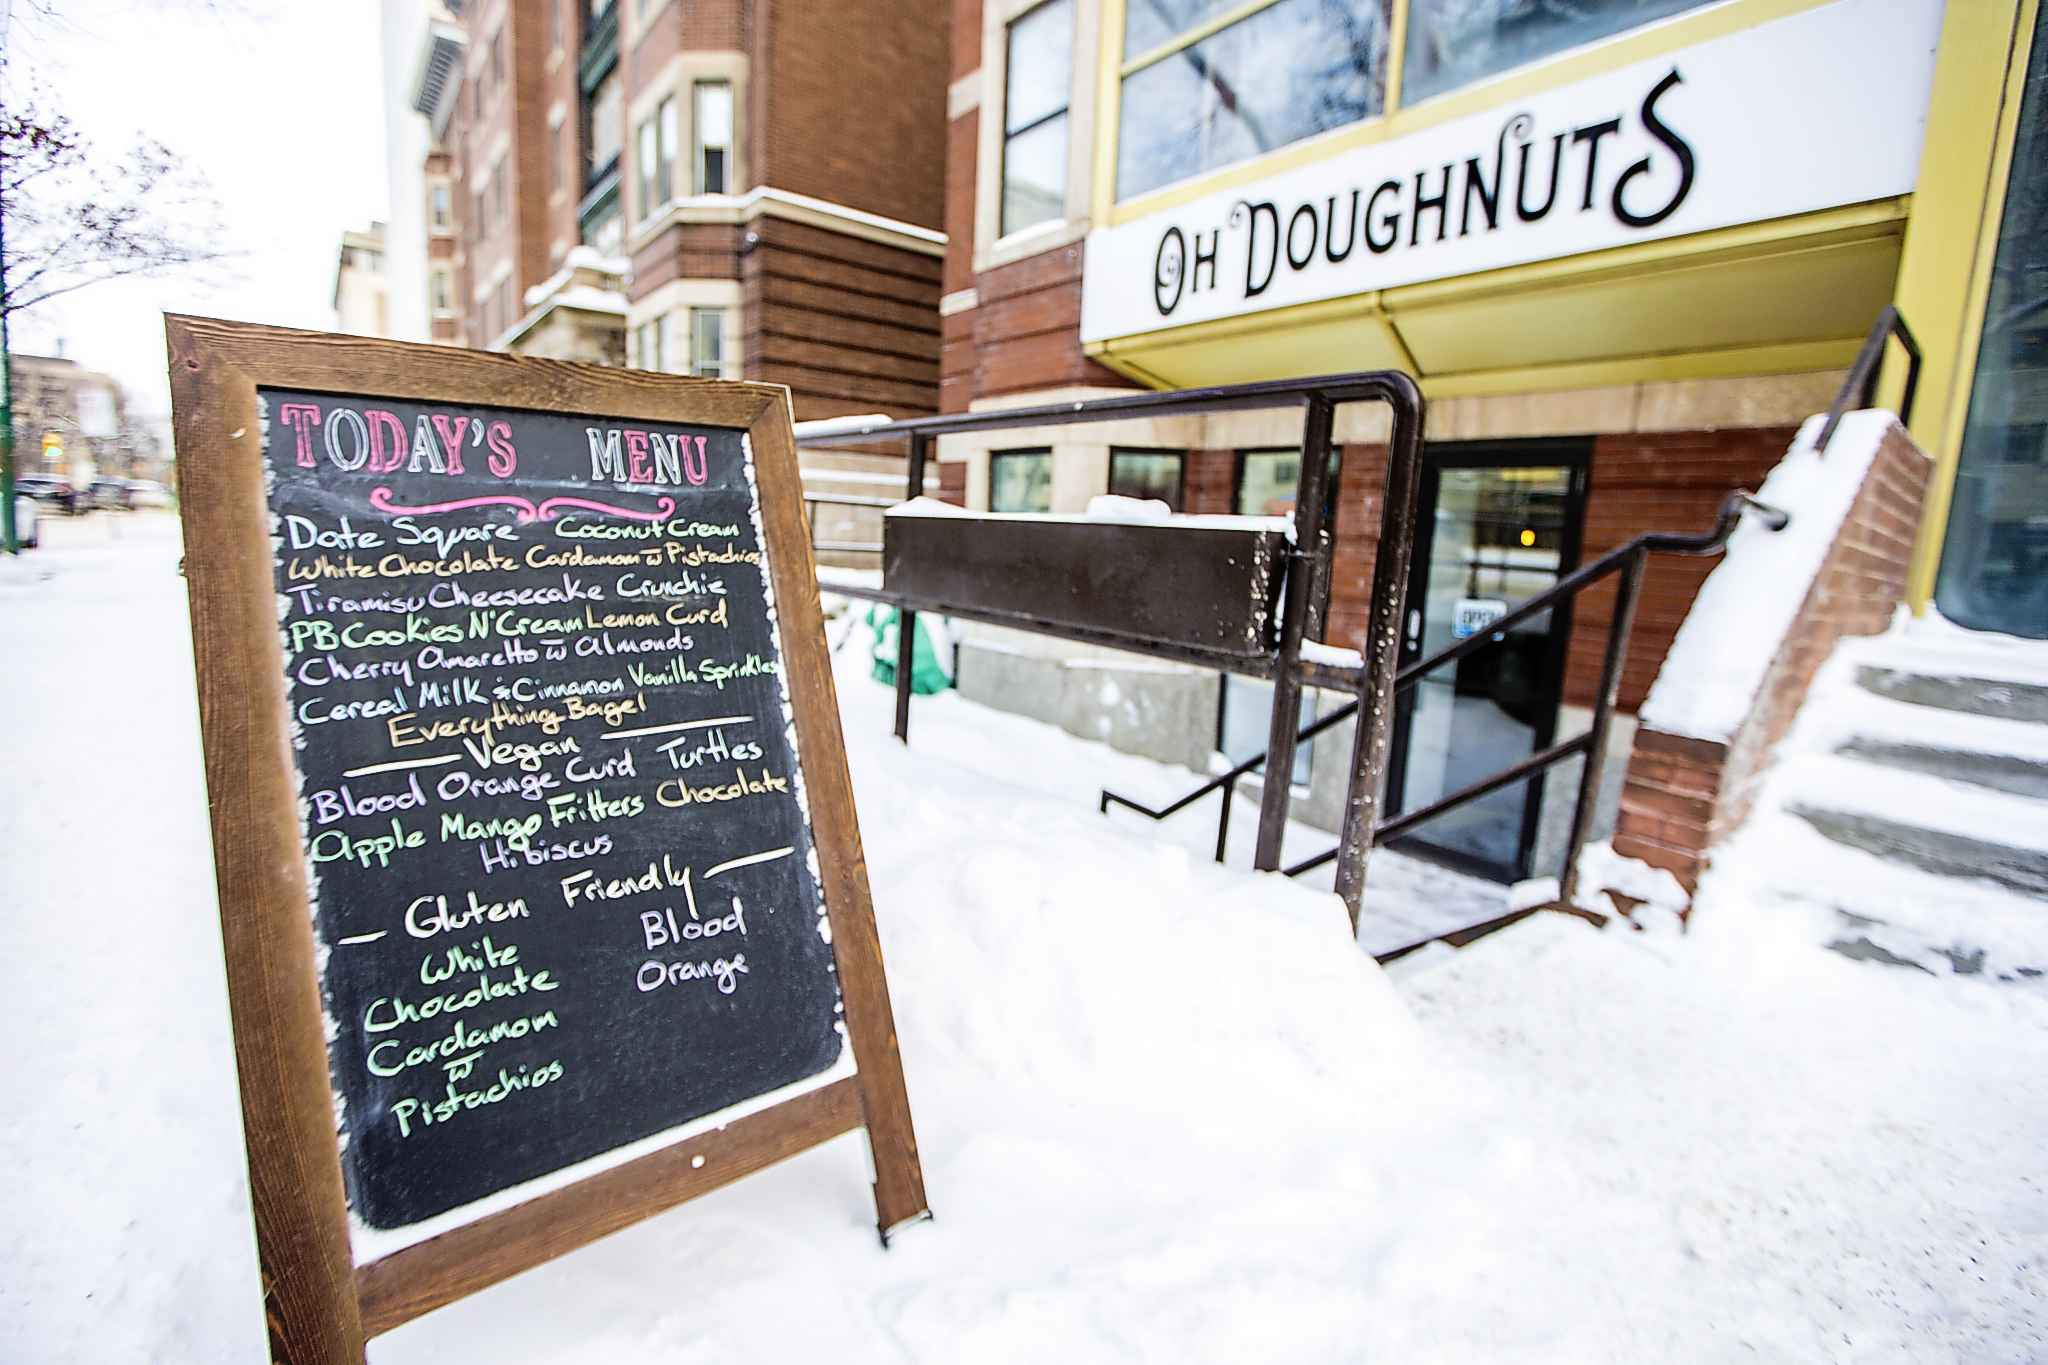 Despite whatever the trolls said, support for the Winnipeg shop soon drowned it out: thousands of responses to both the thread and Trudeau's tweet gave kudos to both the 23rd Prime Minister for supporting a local business and to the shop for asserting itself. (Mikaela MacKenzie / Winnipeg Free Press)